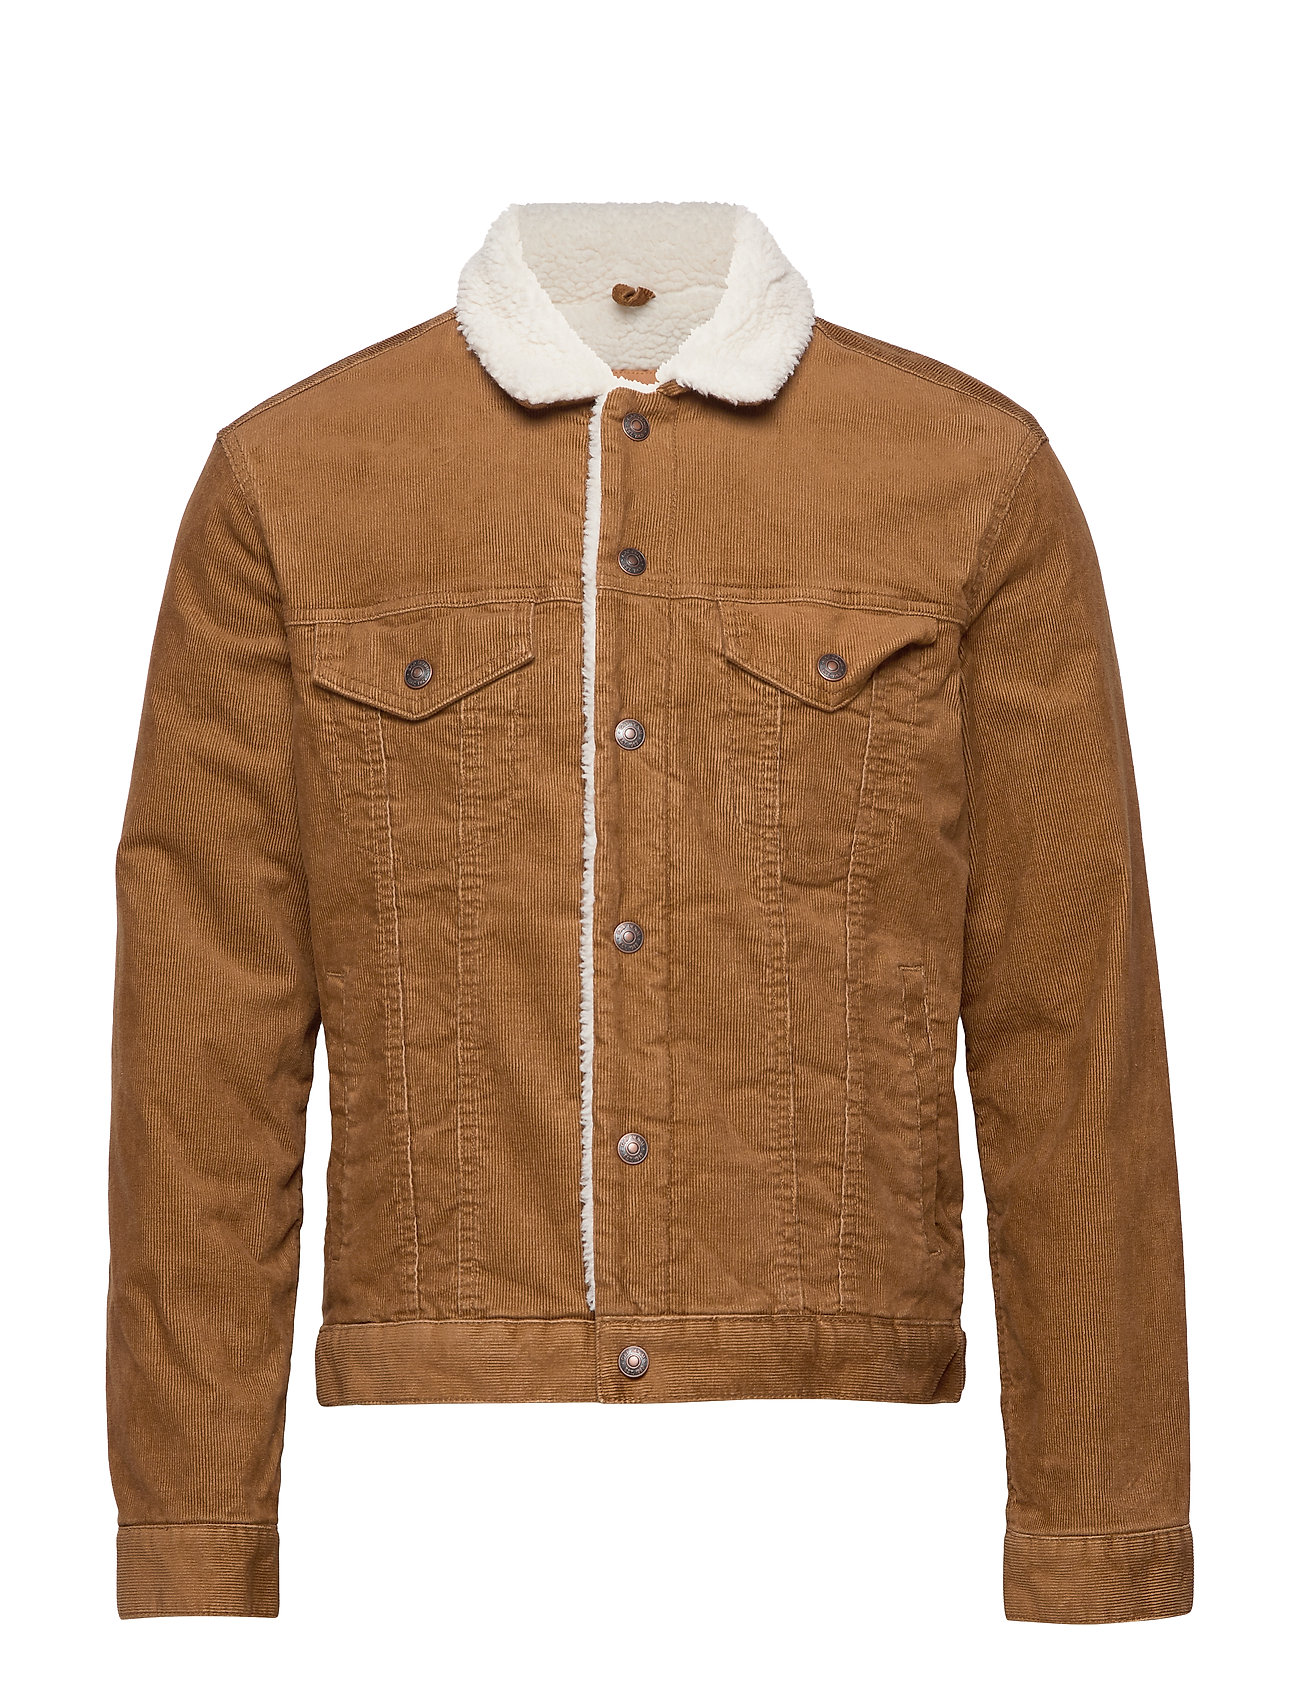 GAP Sherpa-Lined Icon Corduroy Jacket - PALOMINO BROWN GLOBAL